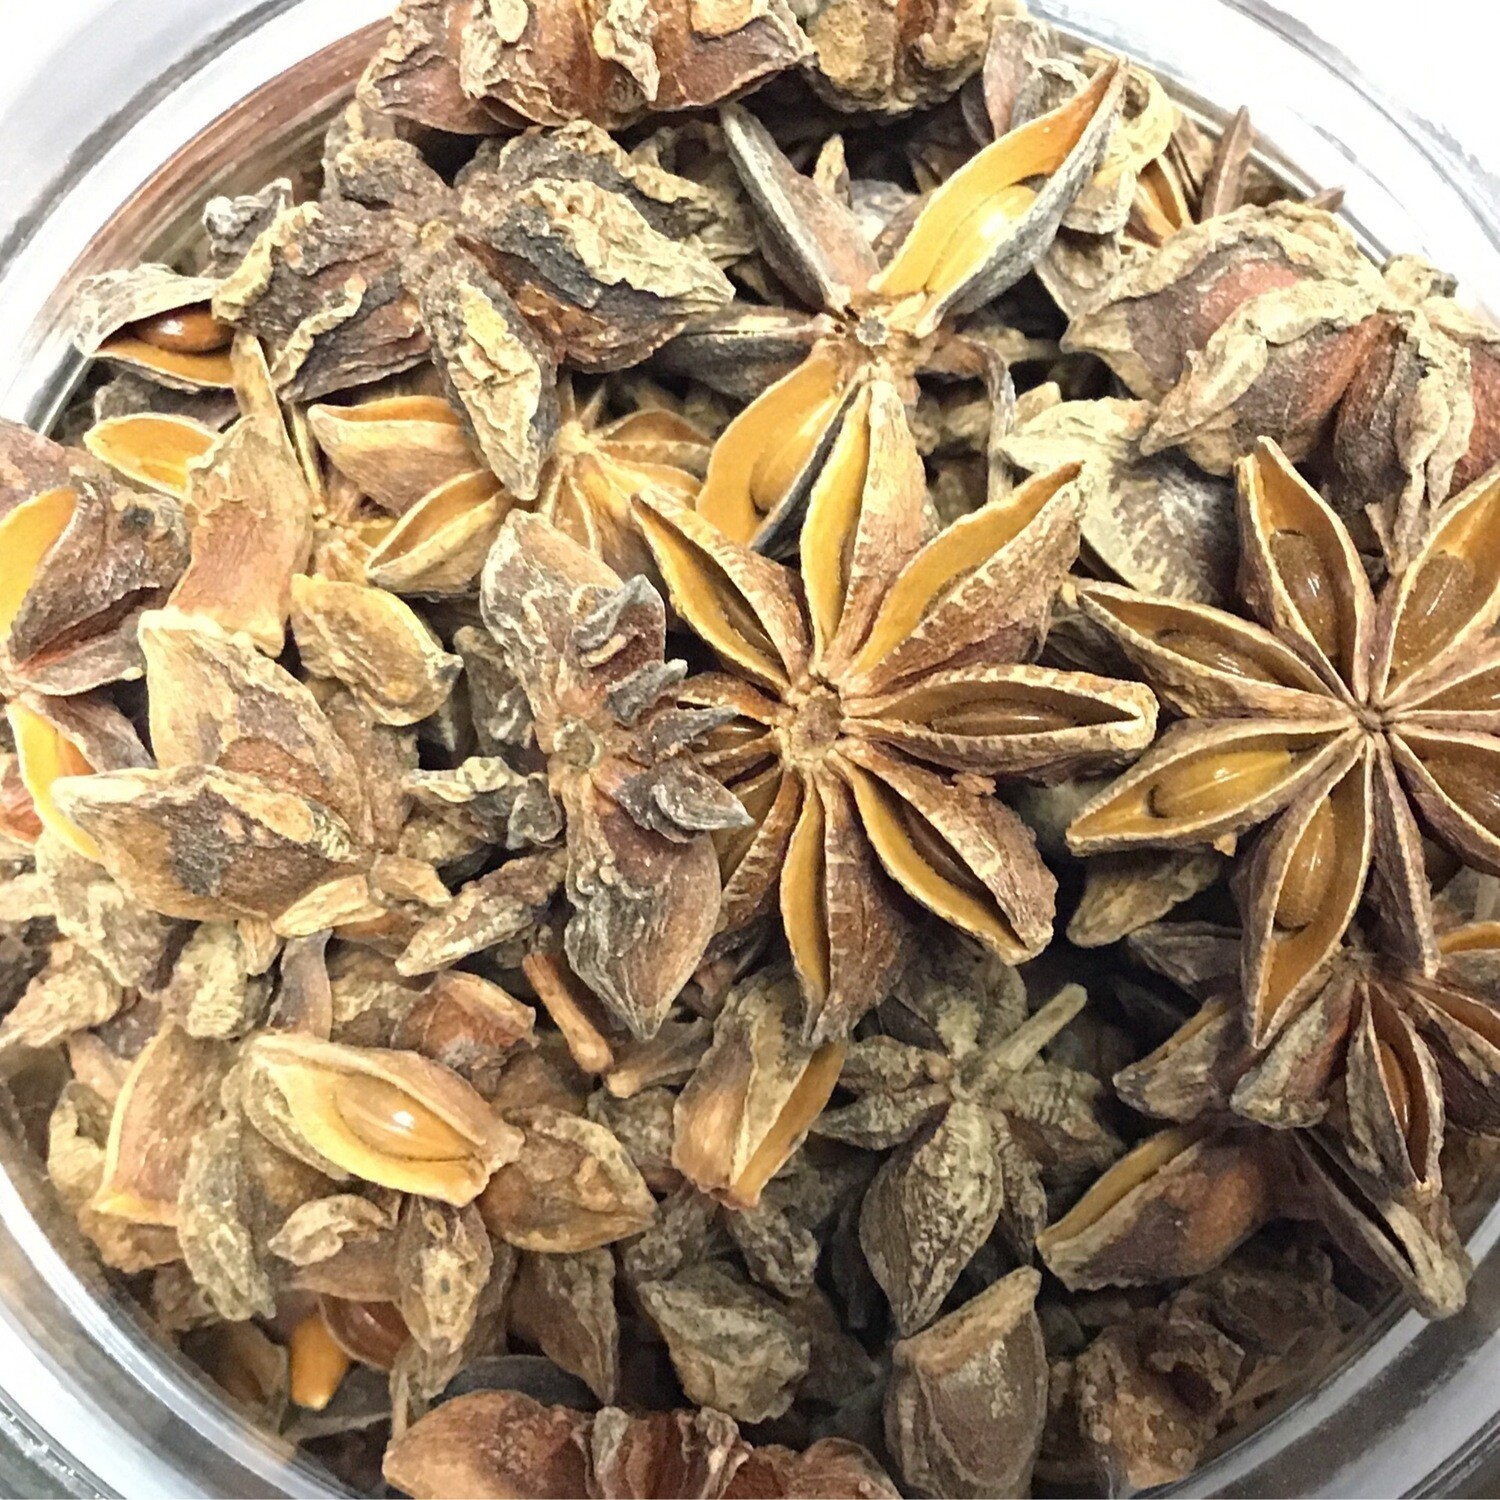 Star Anise sold per oz